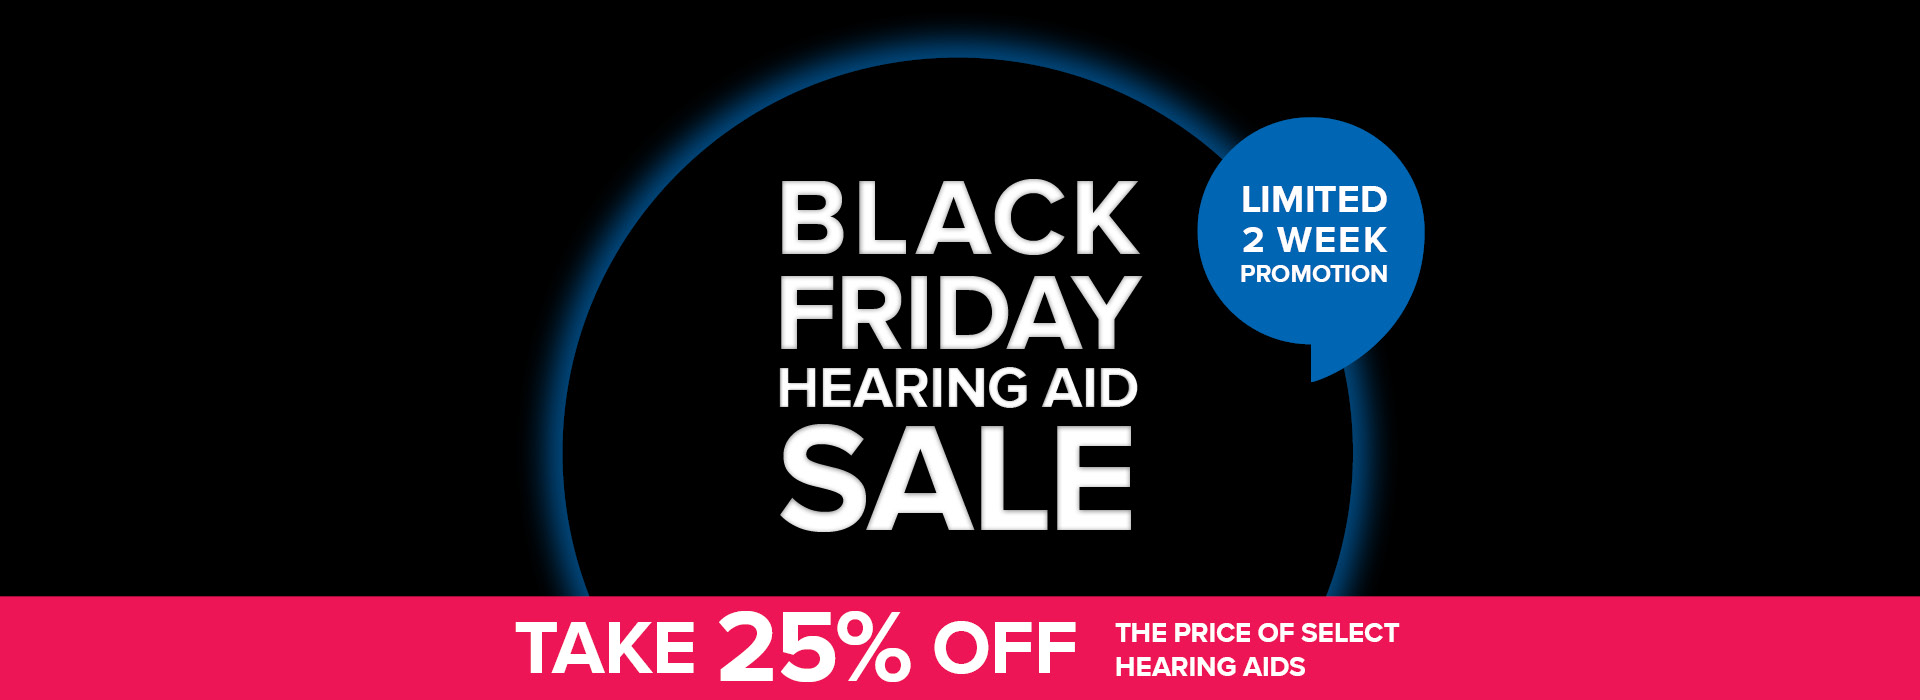 BLACK FRIDAY SALE - TAKE 25% OFF THE PRICE OF SELECT HEARING AIDS